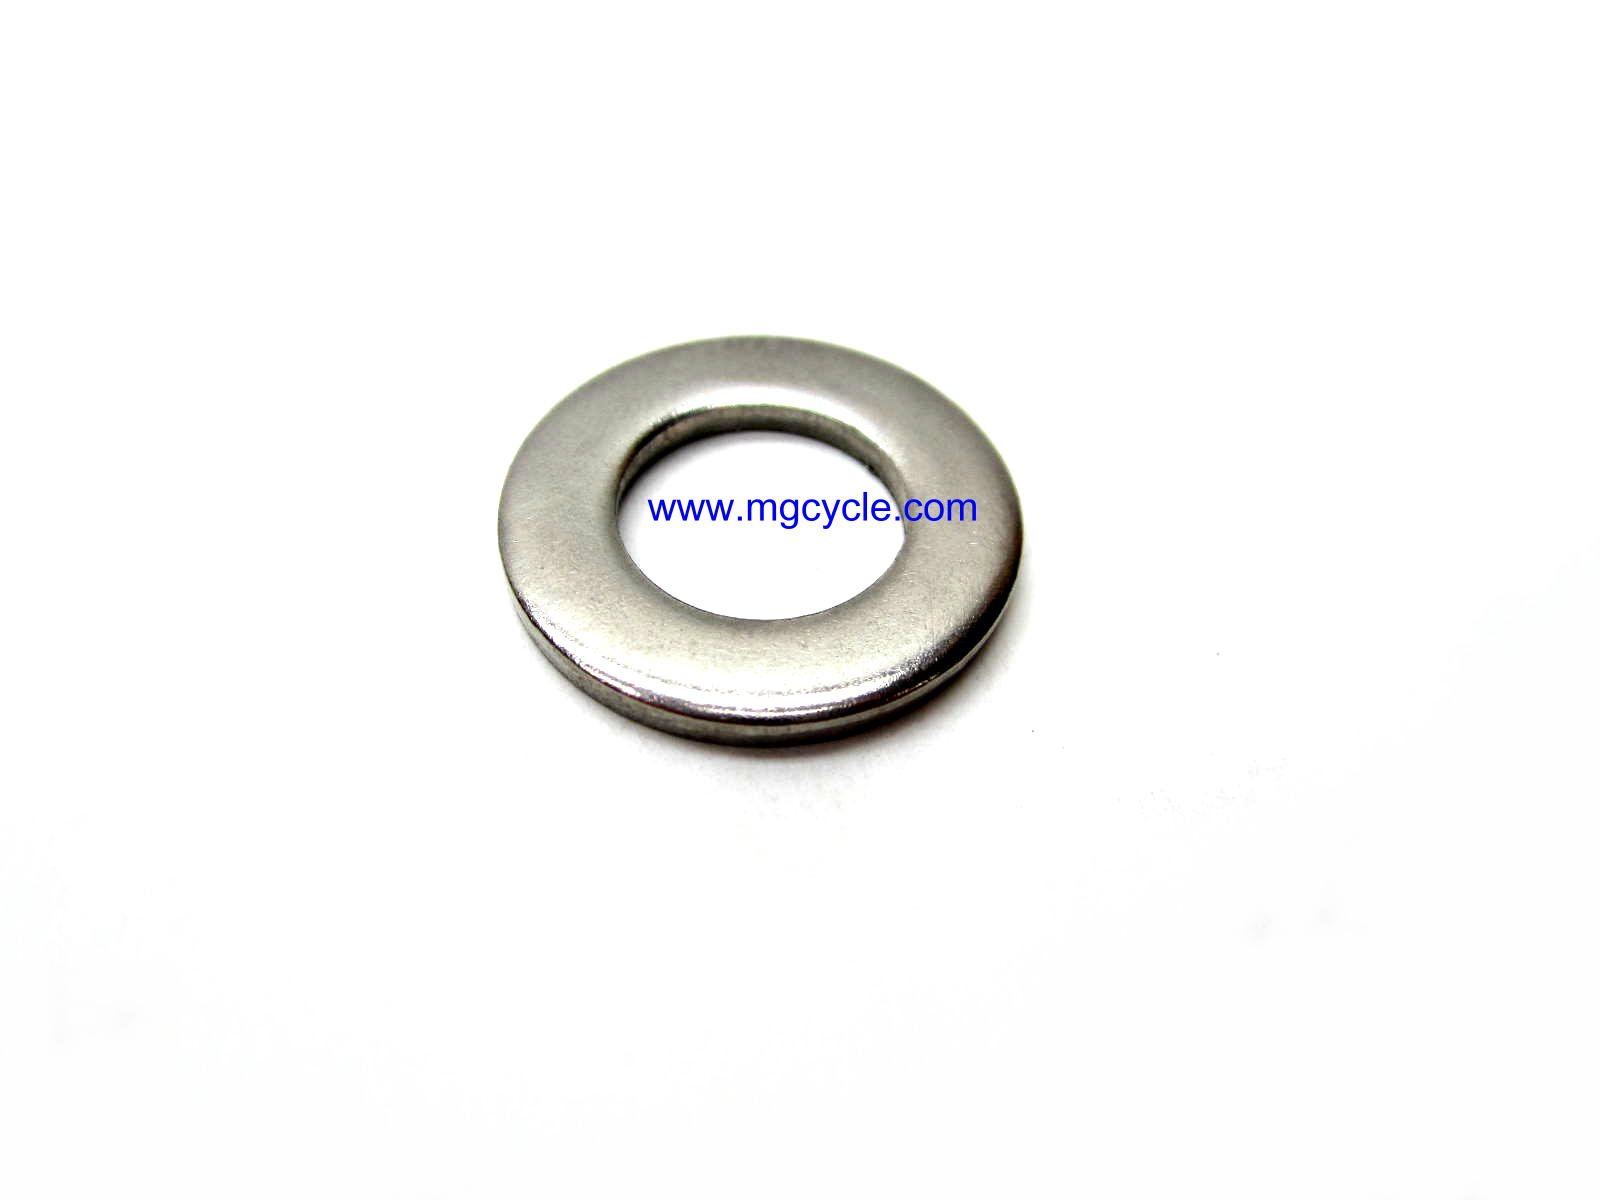 12mm flat washer stainless